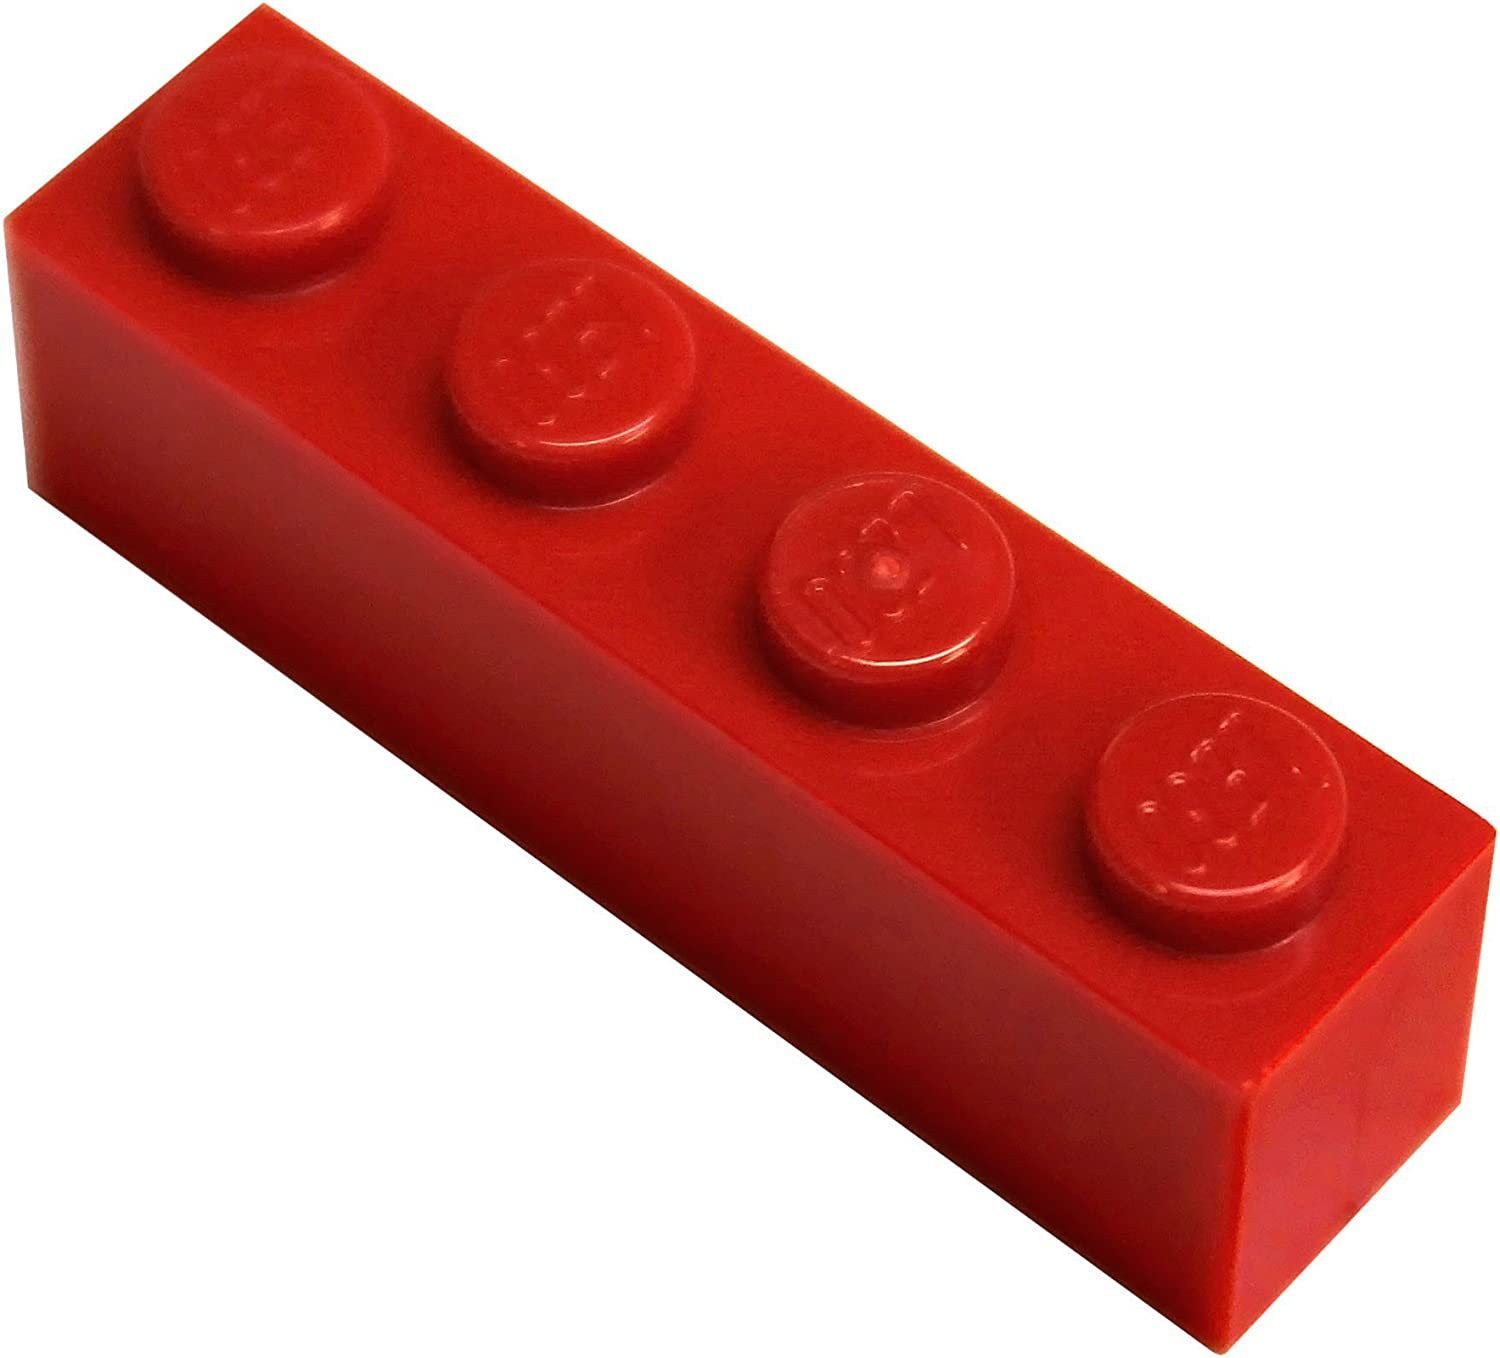 LEGO Parts and Pieces: Red (Bright Red) 1x4 Brick x50